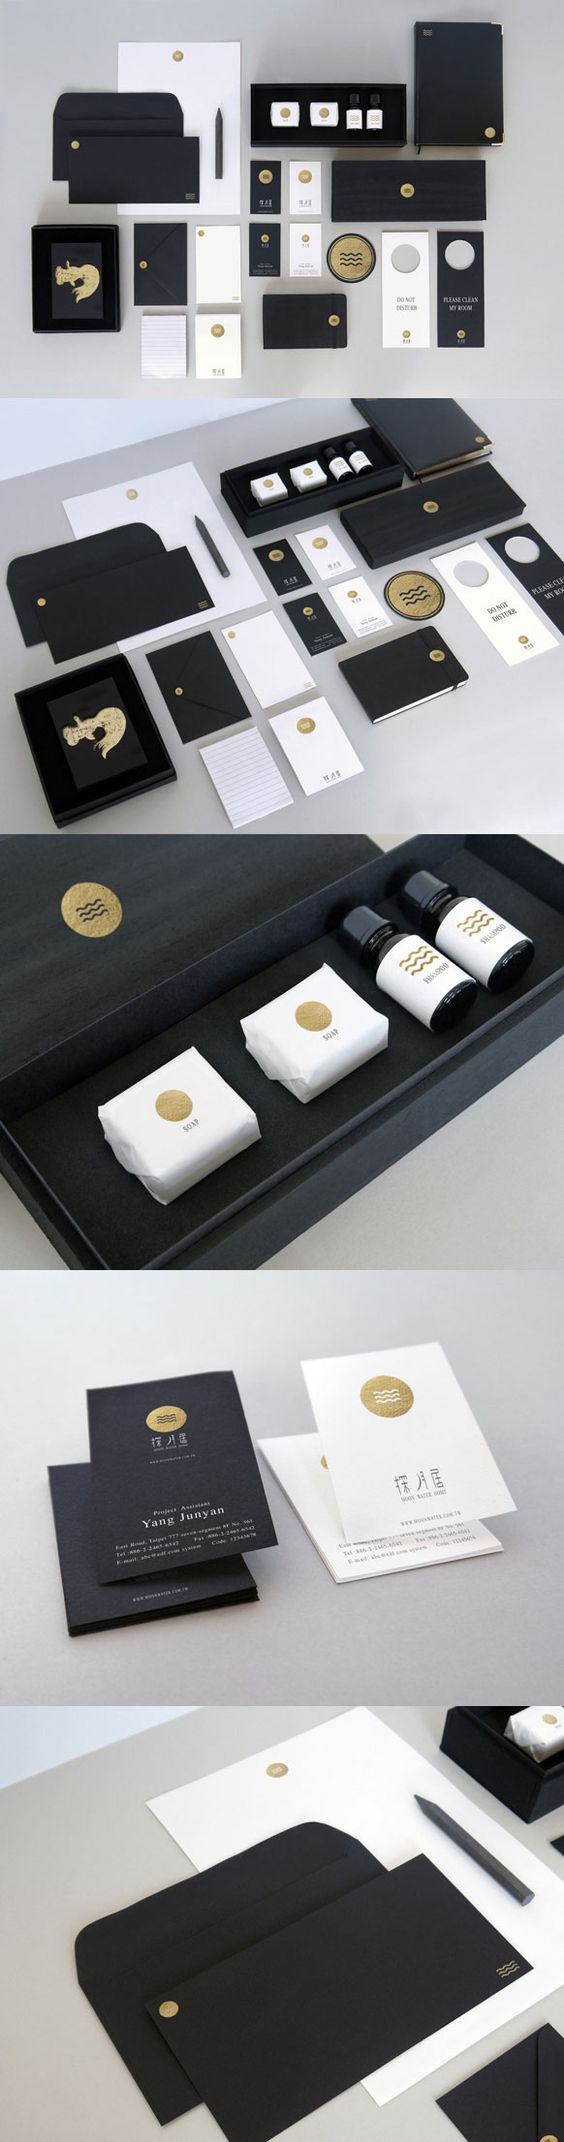 Moon Water Home Hotel branding by Shou-Wei Tsai